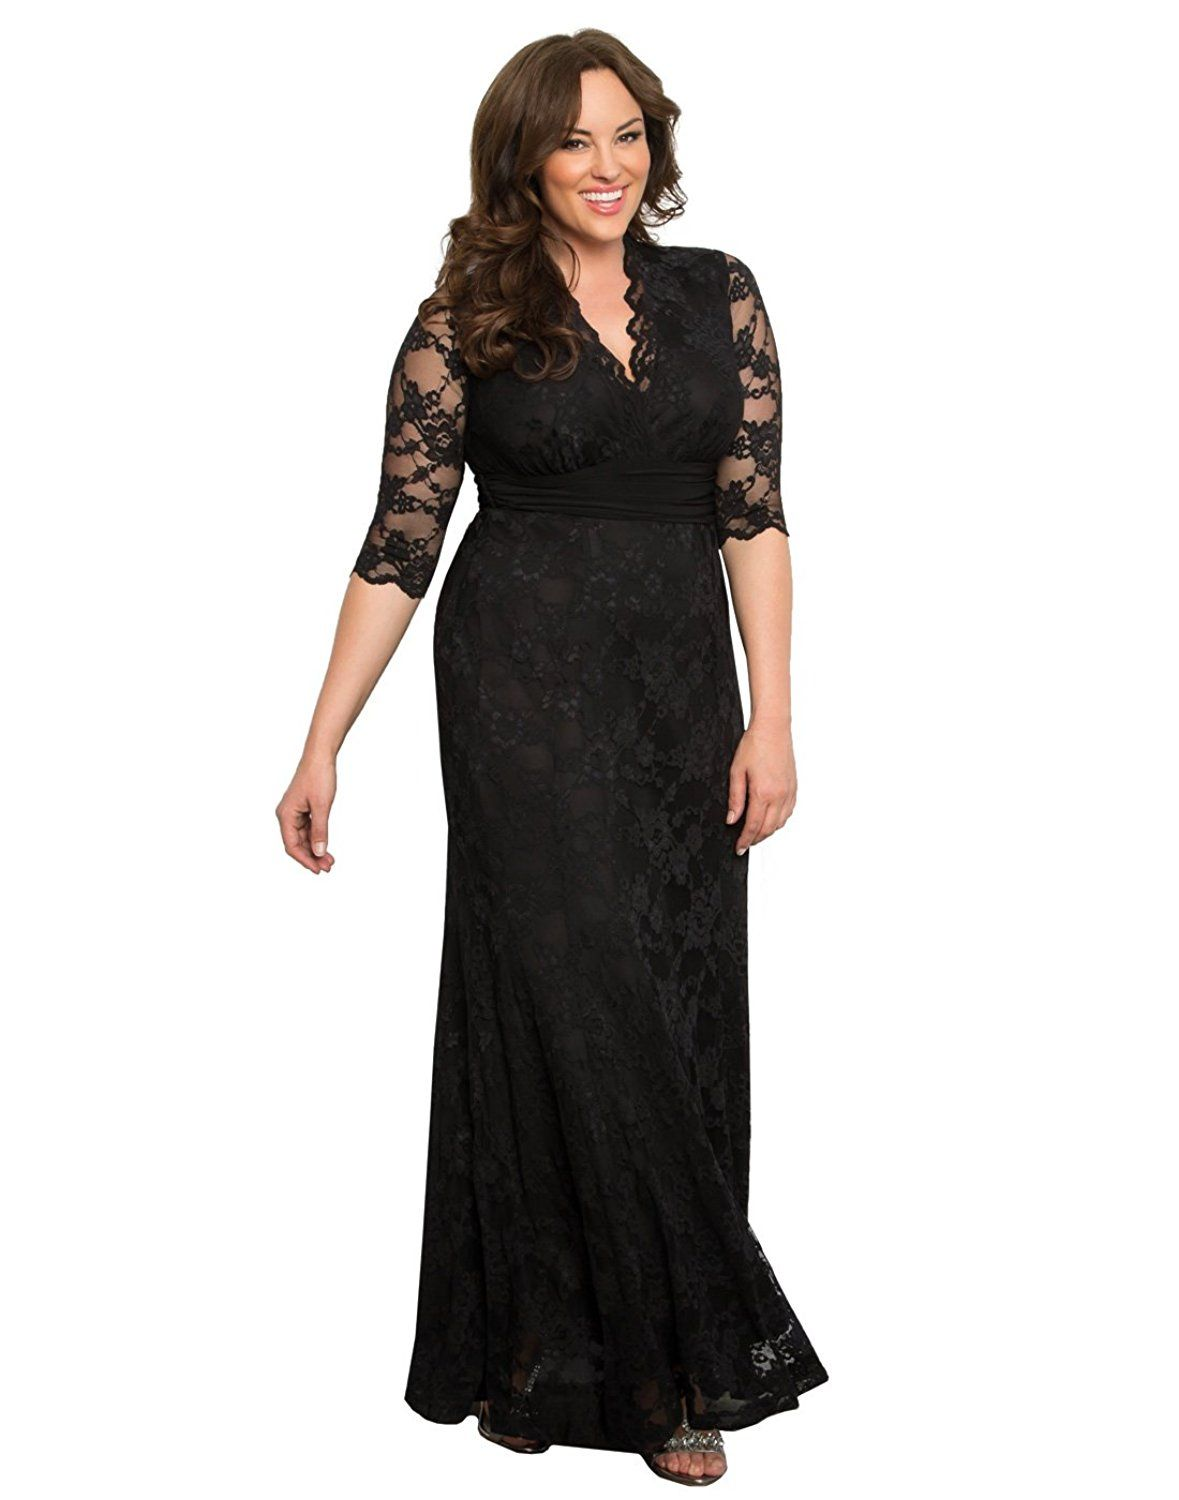 55 Slimming Dresses To Wear A Wedding Dress For Country Guest Check